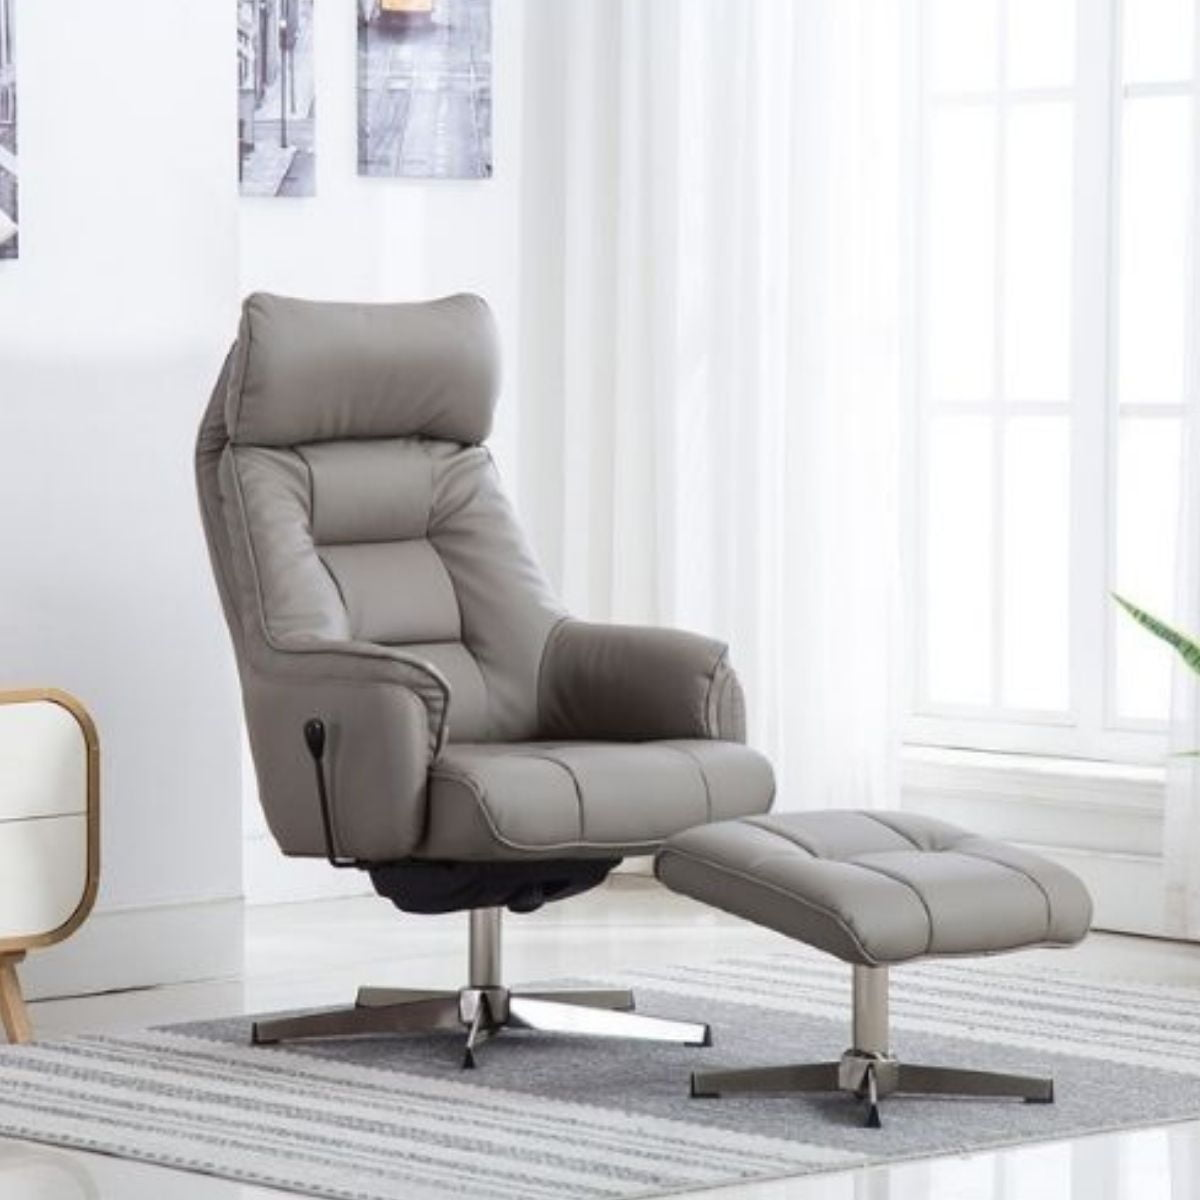 Adeline Swivel Chair